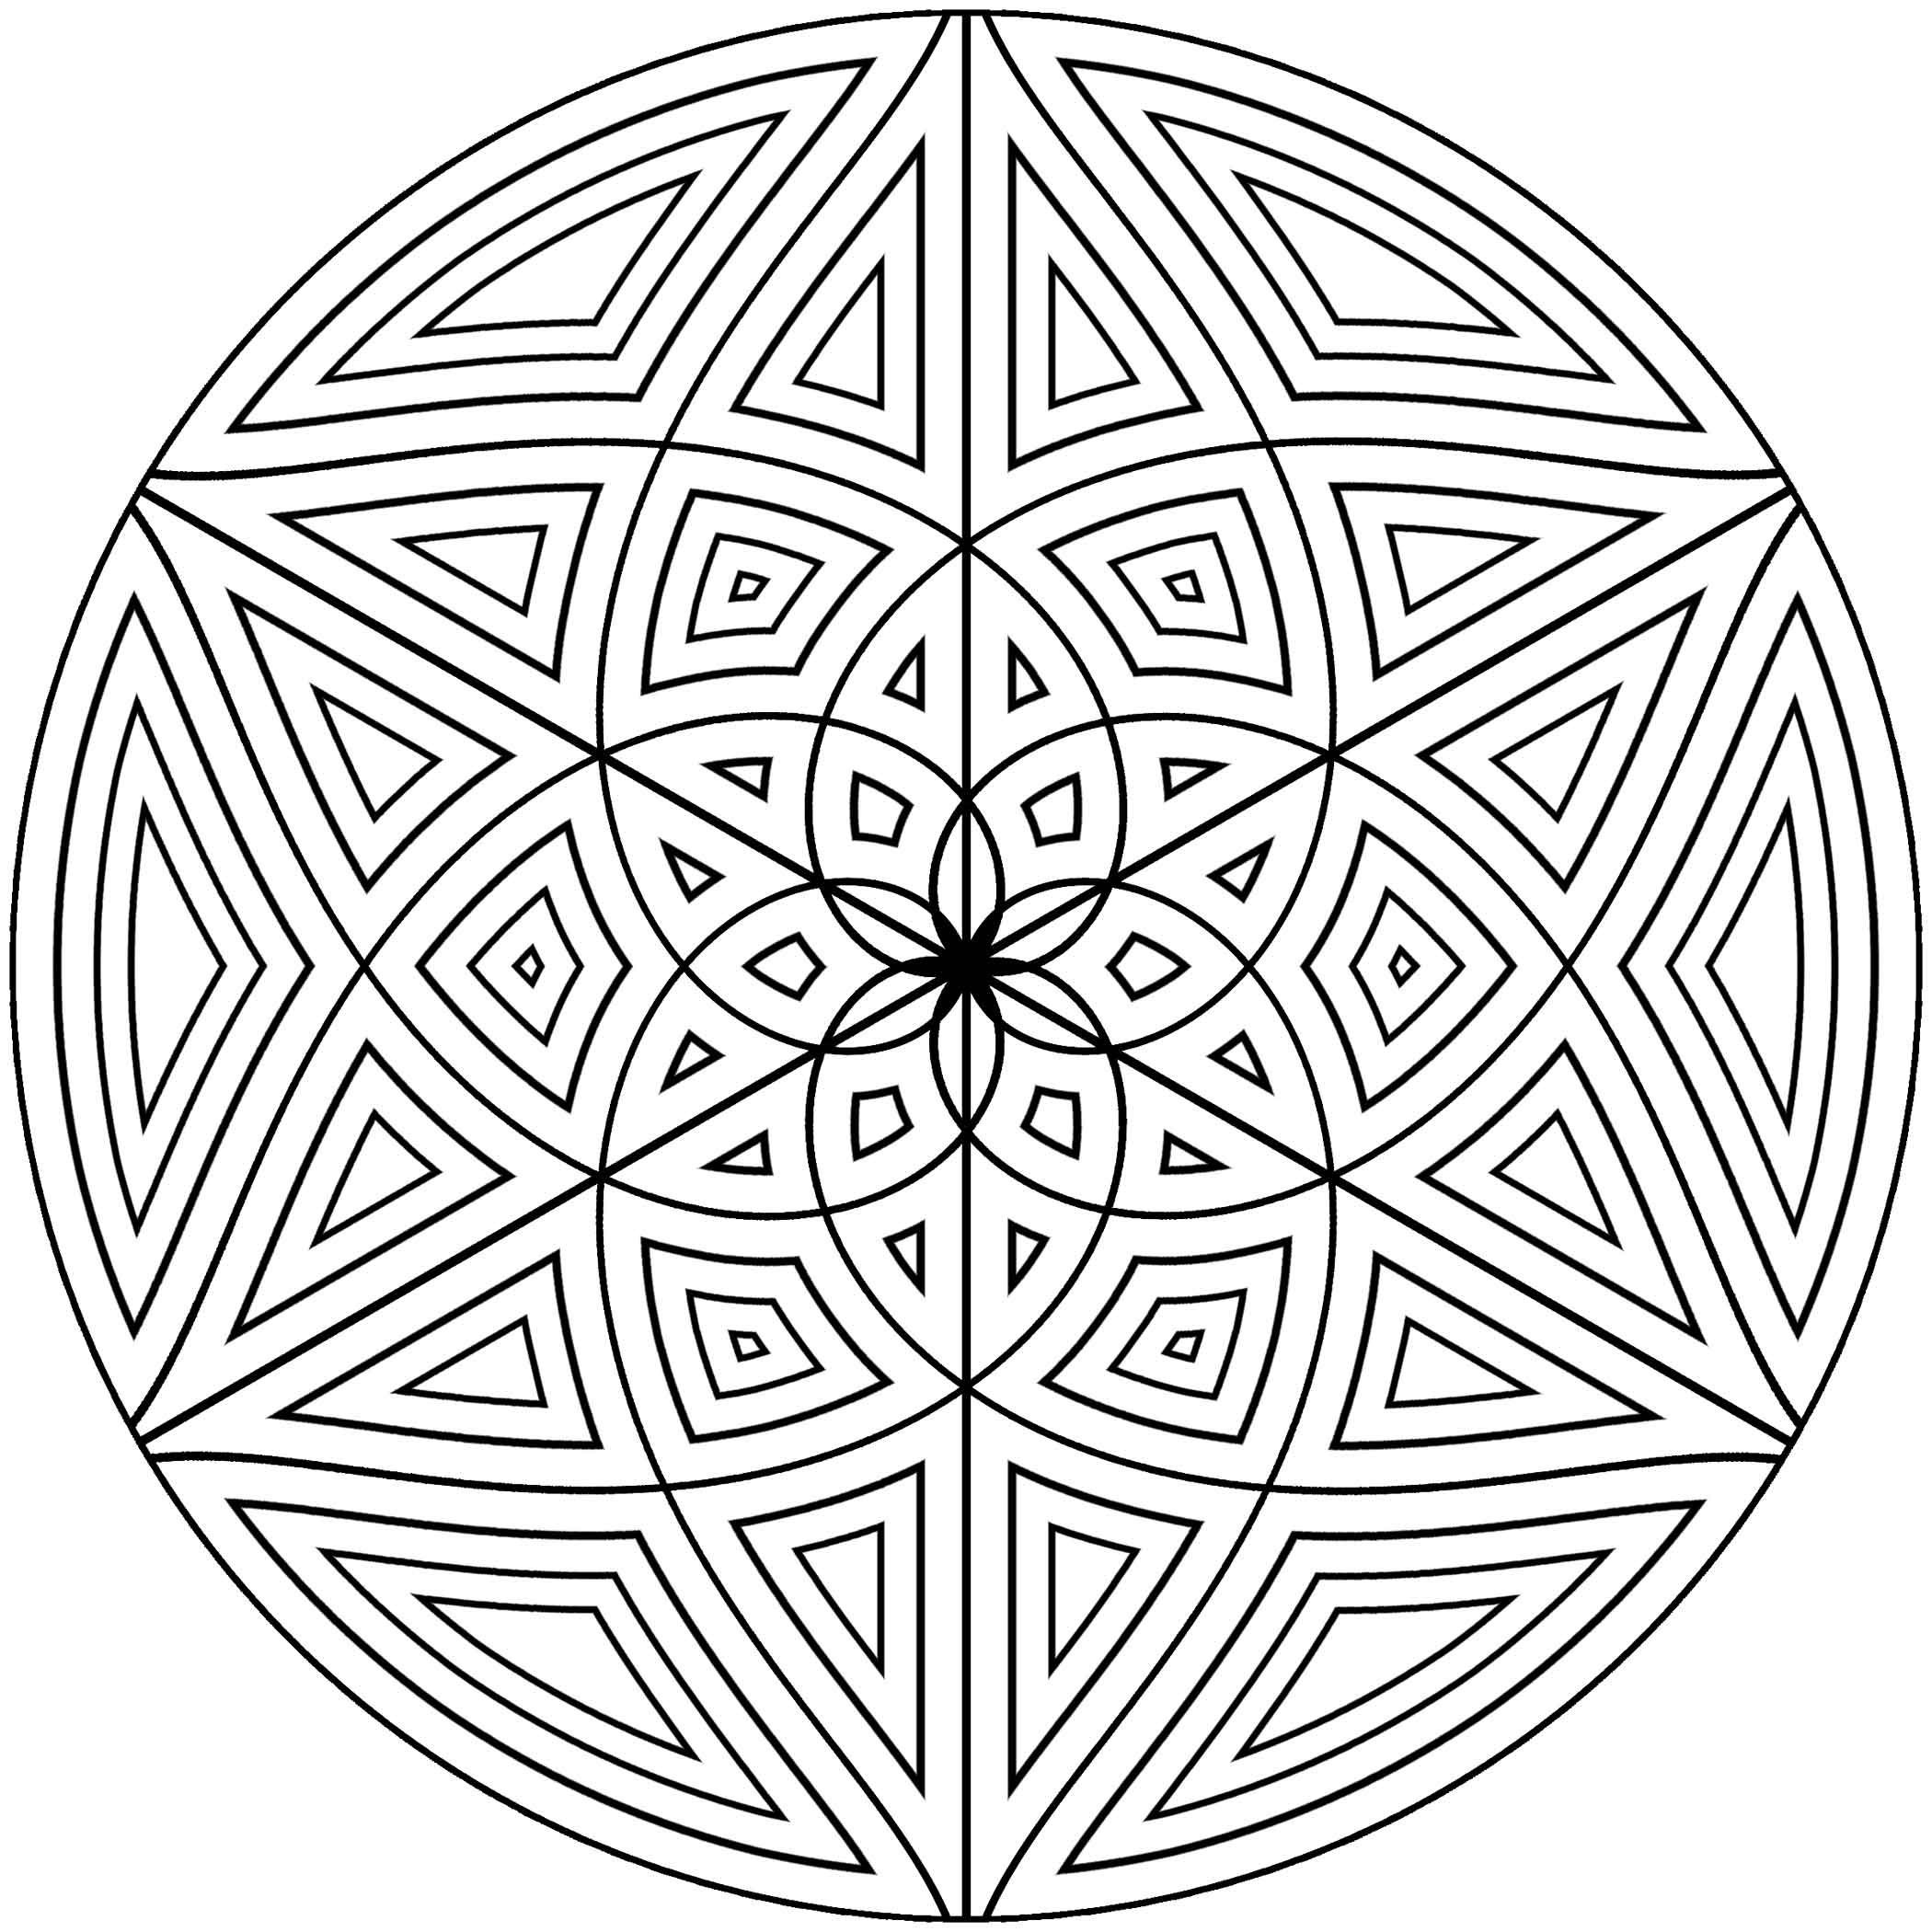 Free Printable Geometric Coloring Pages For Adults Geometric Coloring Pages Designs Coloring Books Geometric Patterns Coloring